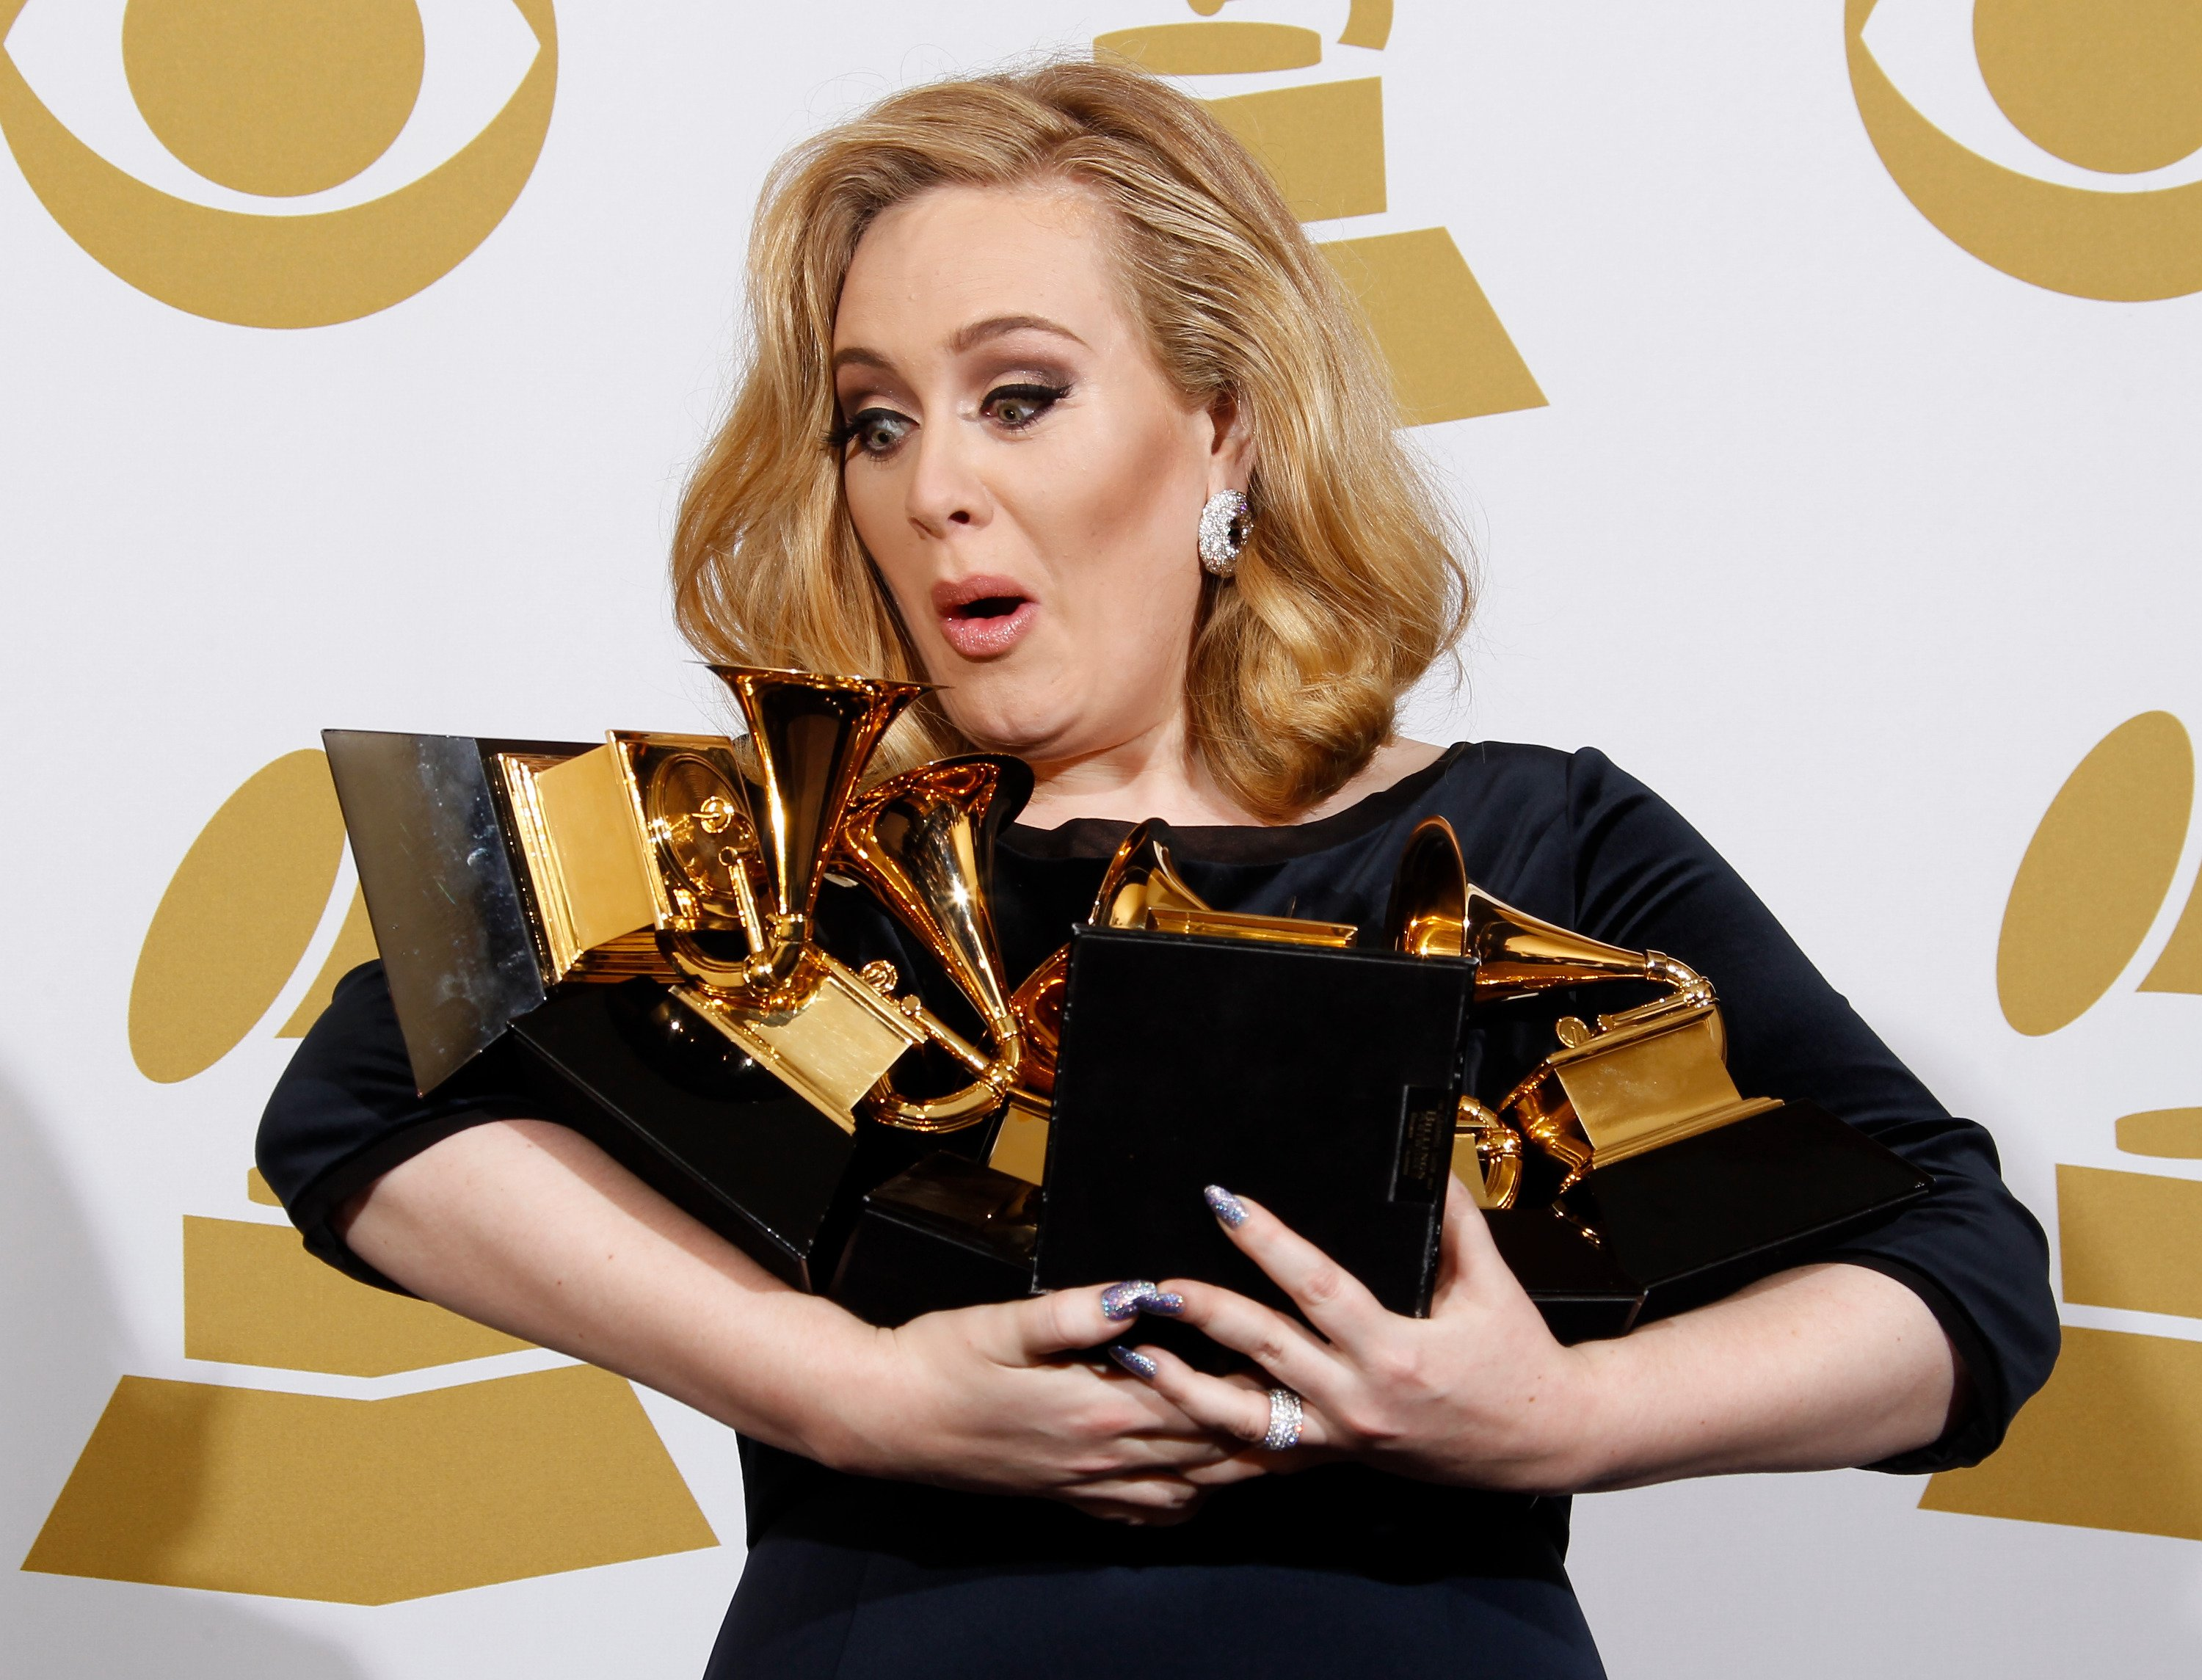 Image Credit: Getty Images / Adele flaunting her wins at the Grammy Awards.